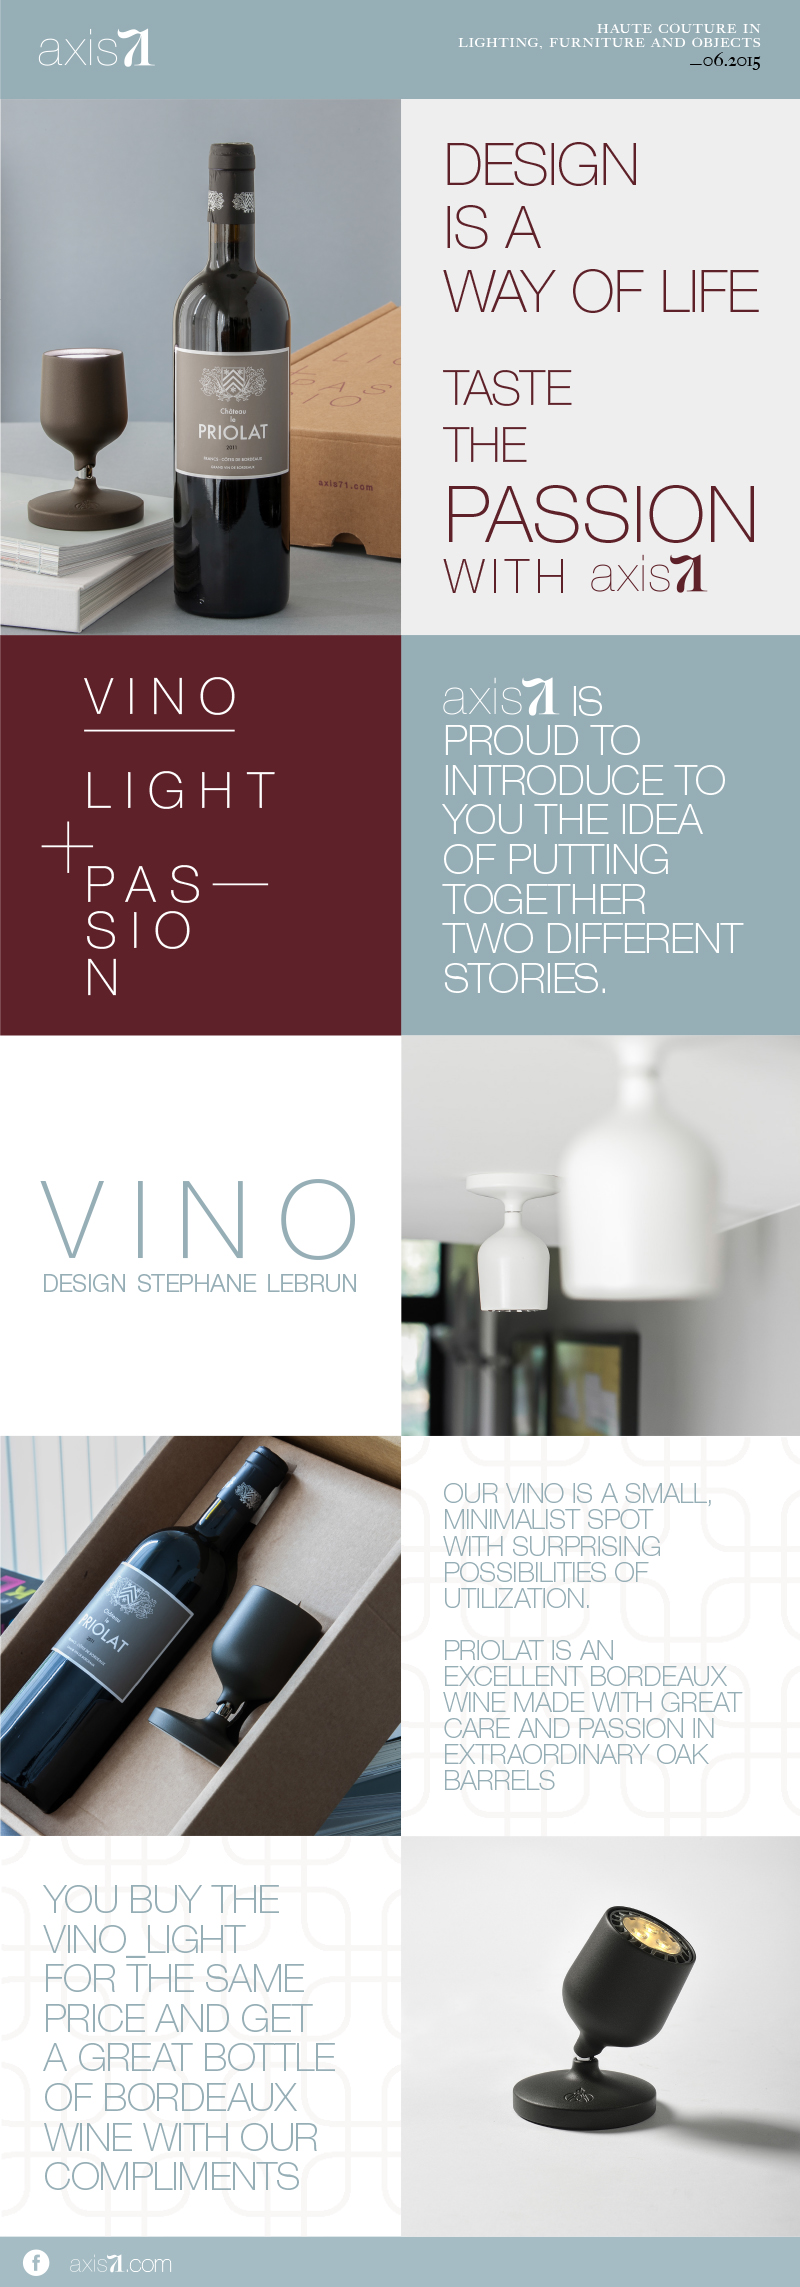 Action_Vino_Light_&_Passion_Rosso